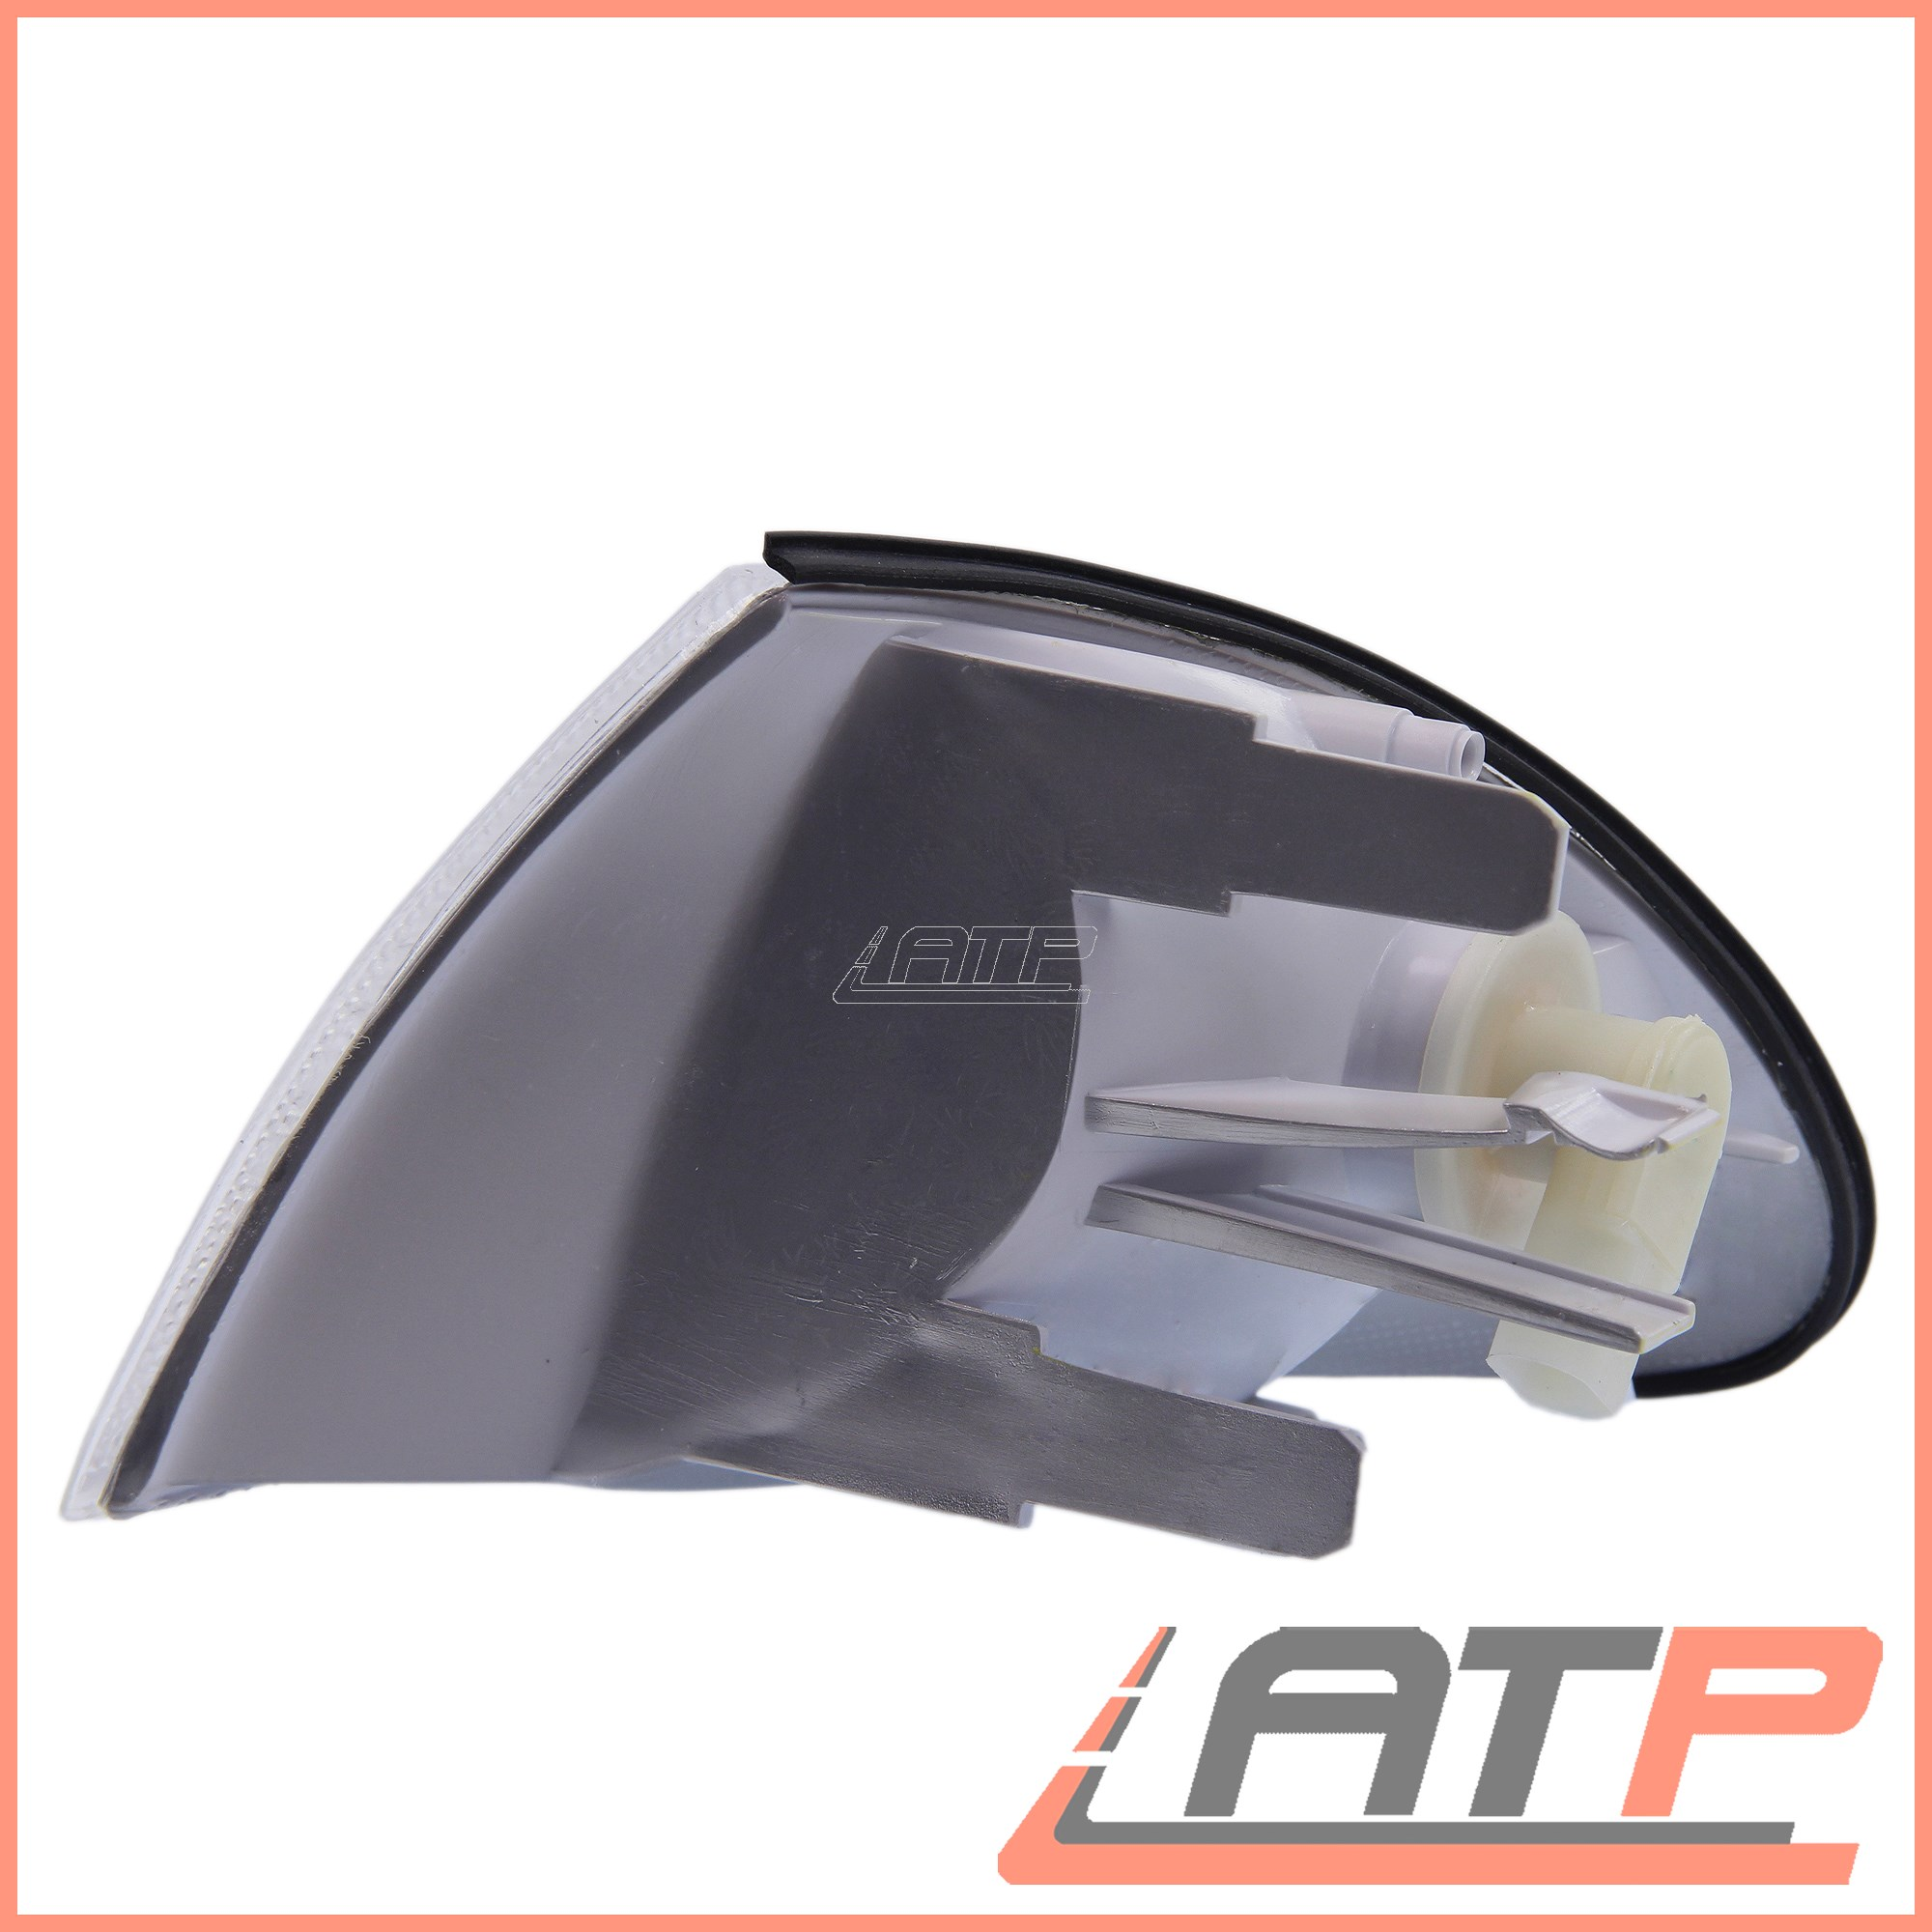 1x-INDICATOR-FRONT-RIGHT-WHITE-LENS-BMW-3-SERIES-E46 thumbnail 2